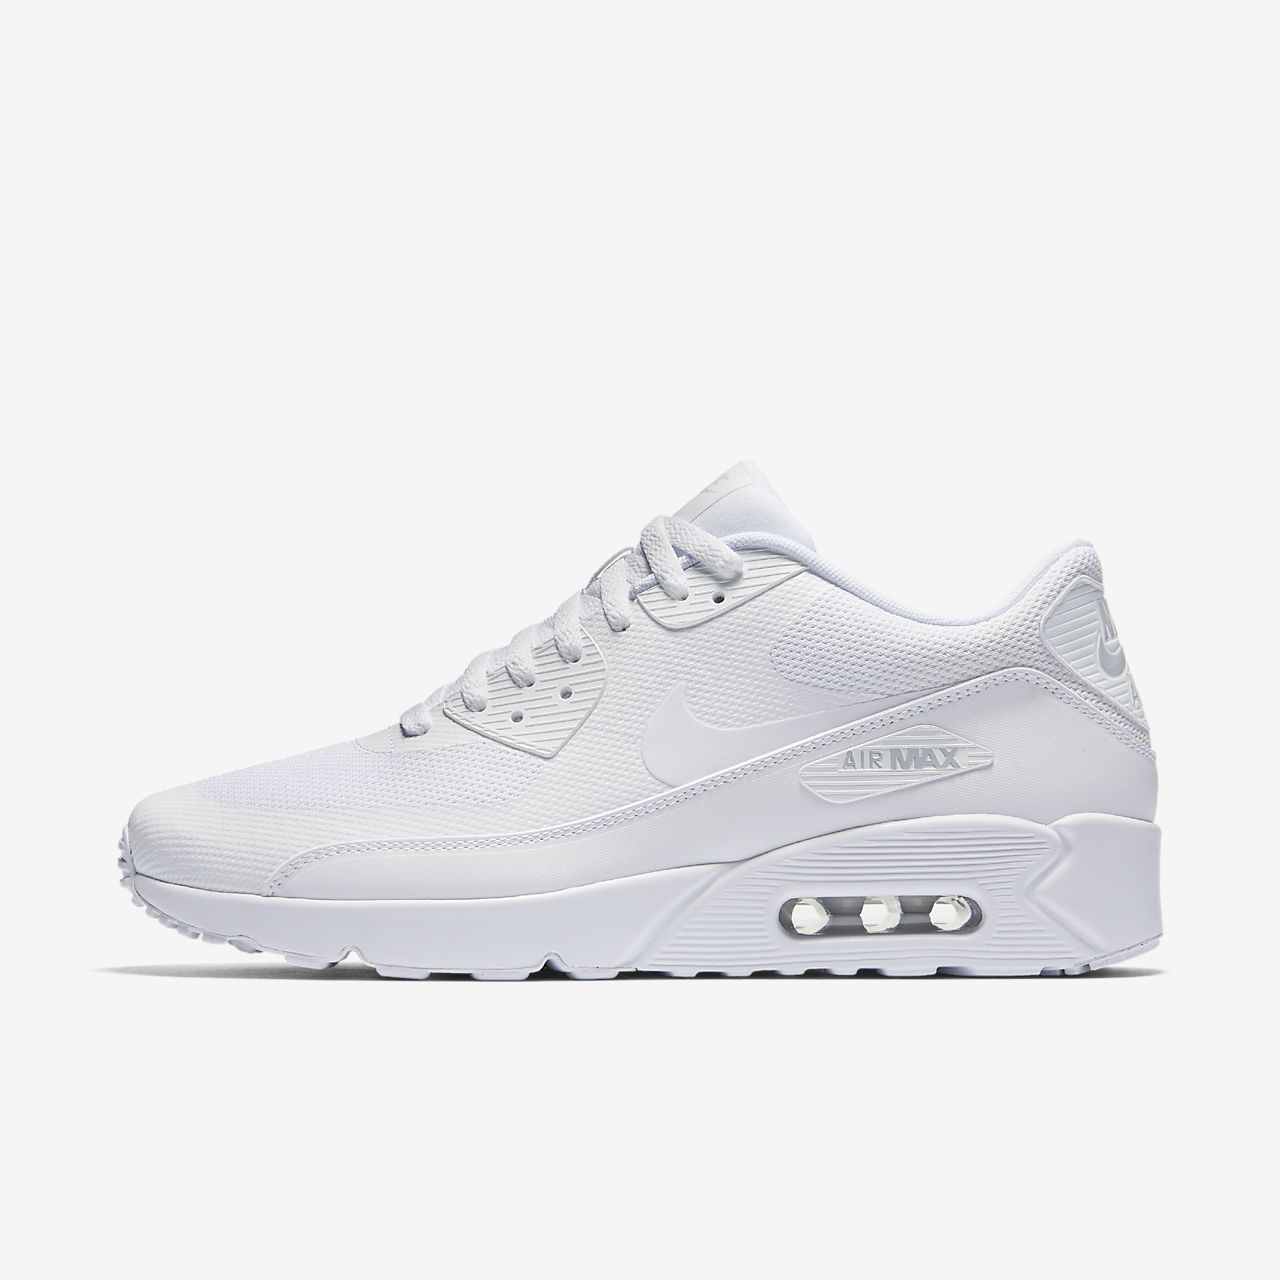 Air Max 90 Ultra 2.0 Blanc Essentiel prédédouanement ordre point de vente  3R9xASe